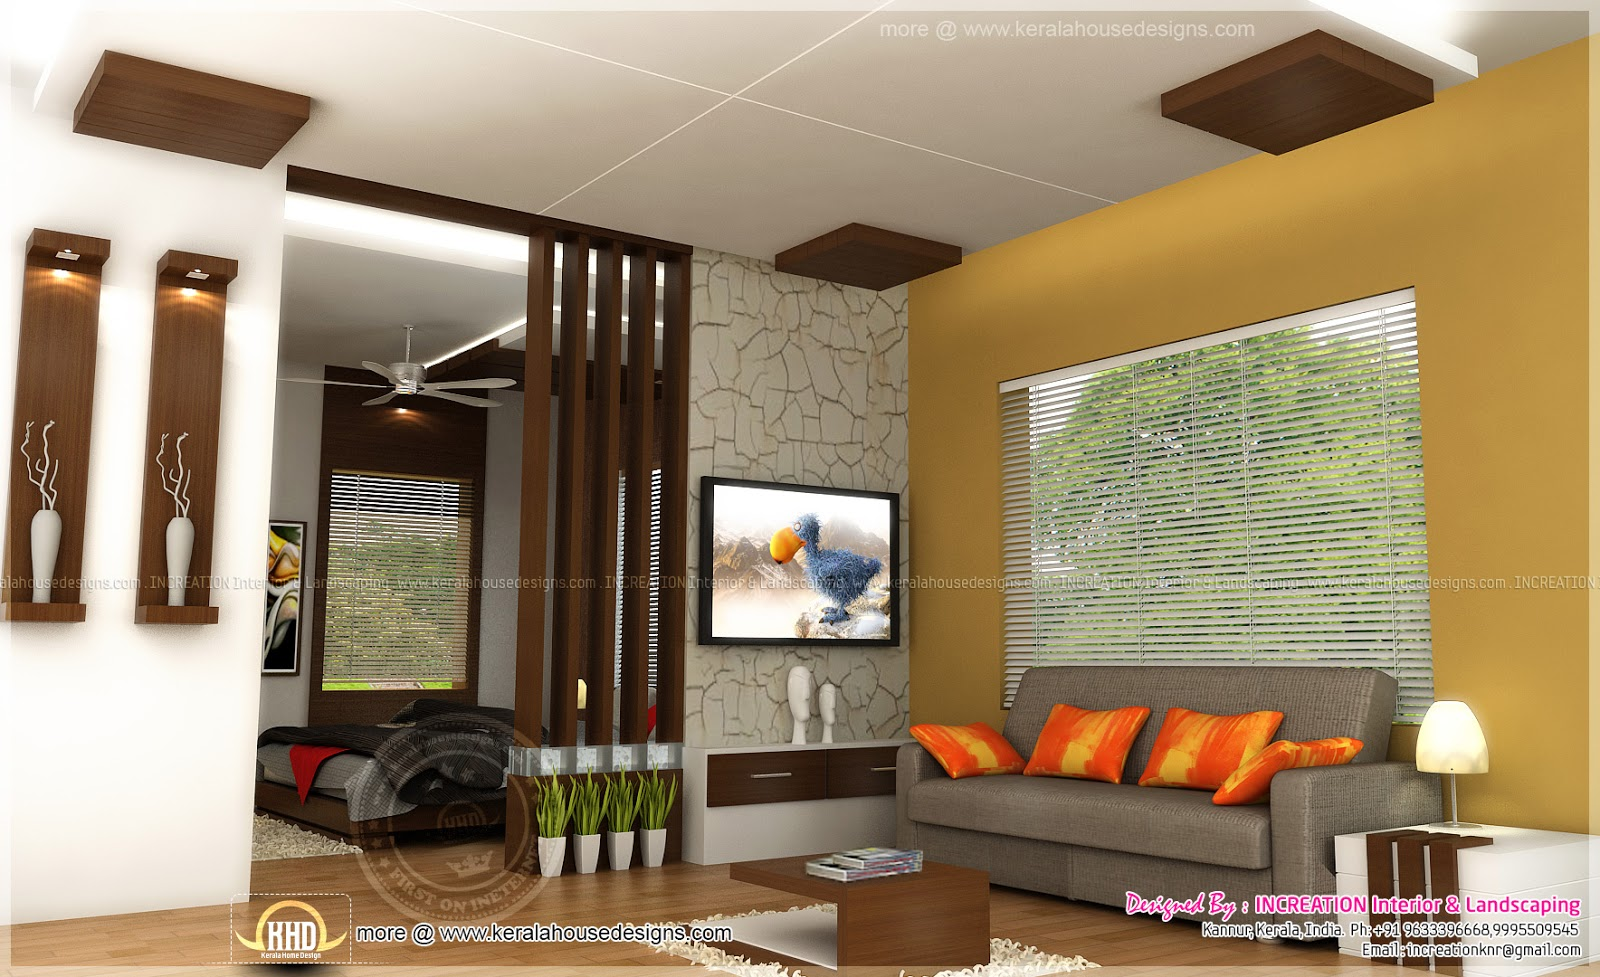 Interior designs from kannur kerala kerala home design for Home interior decorating